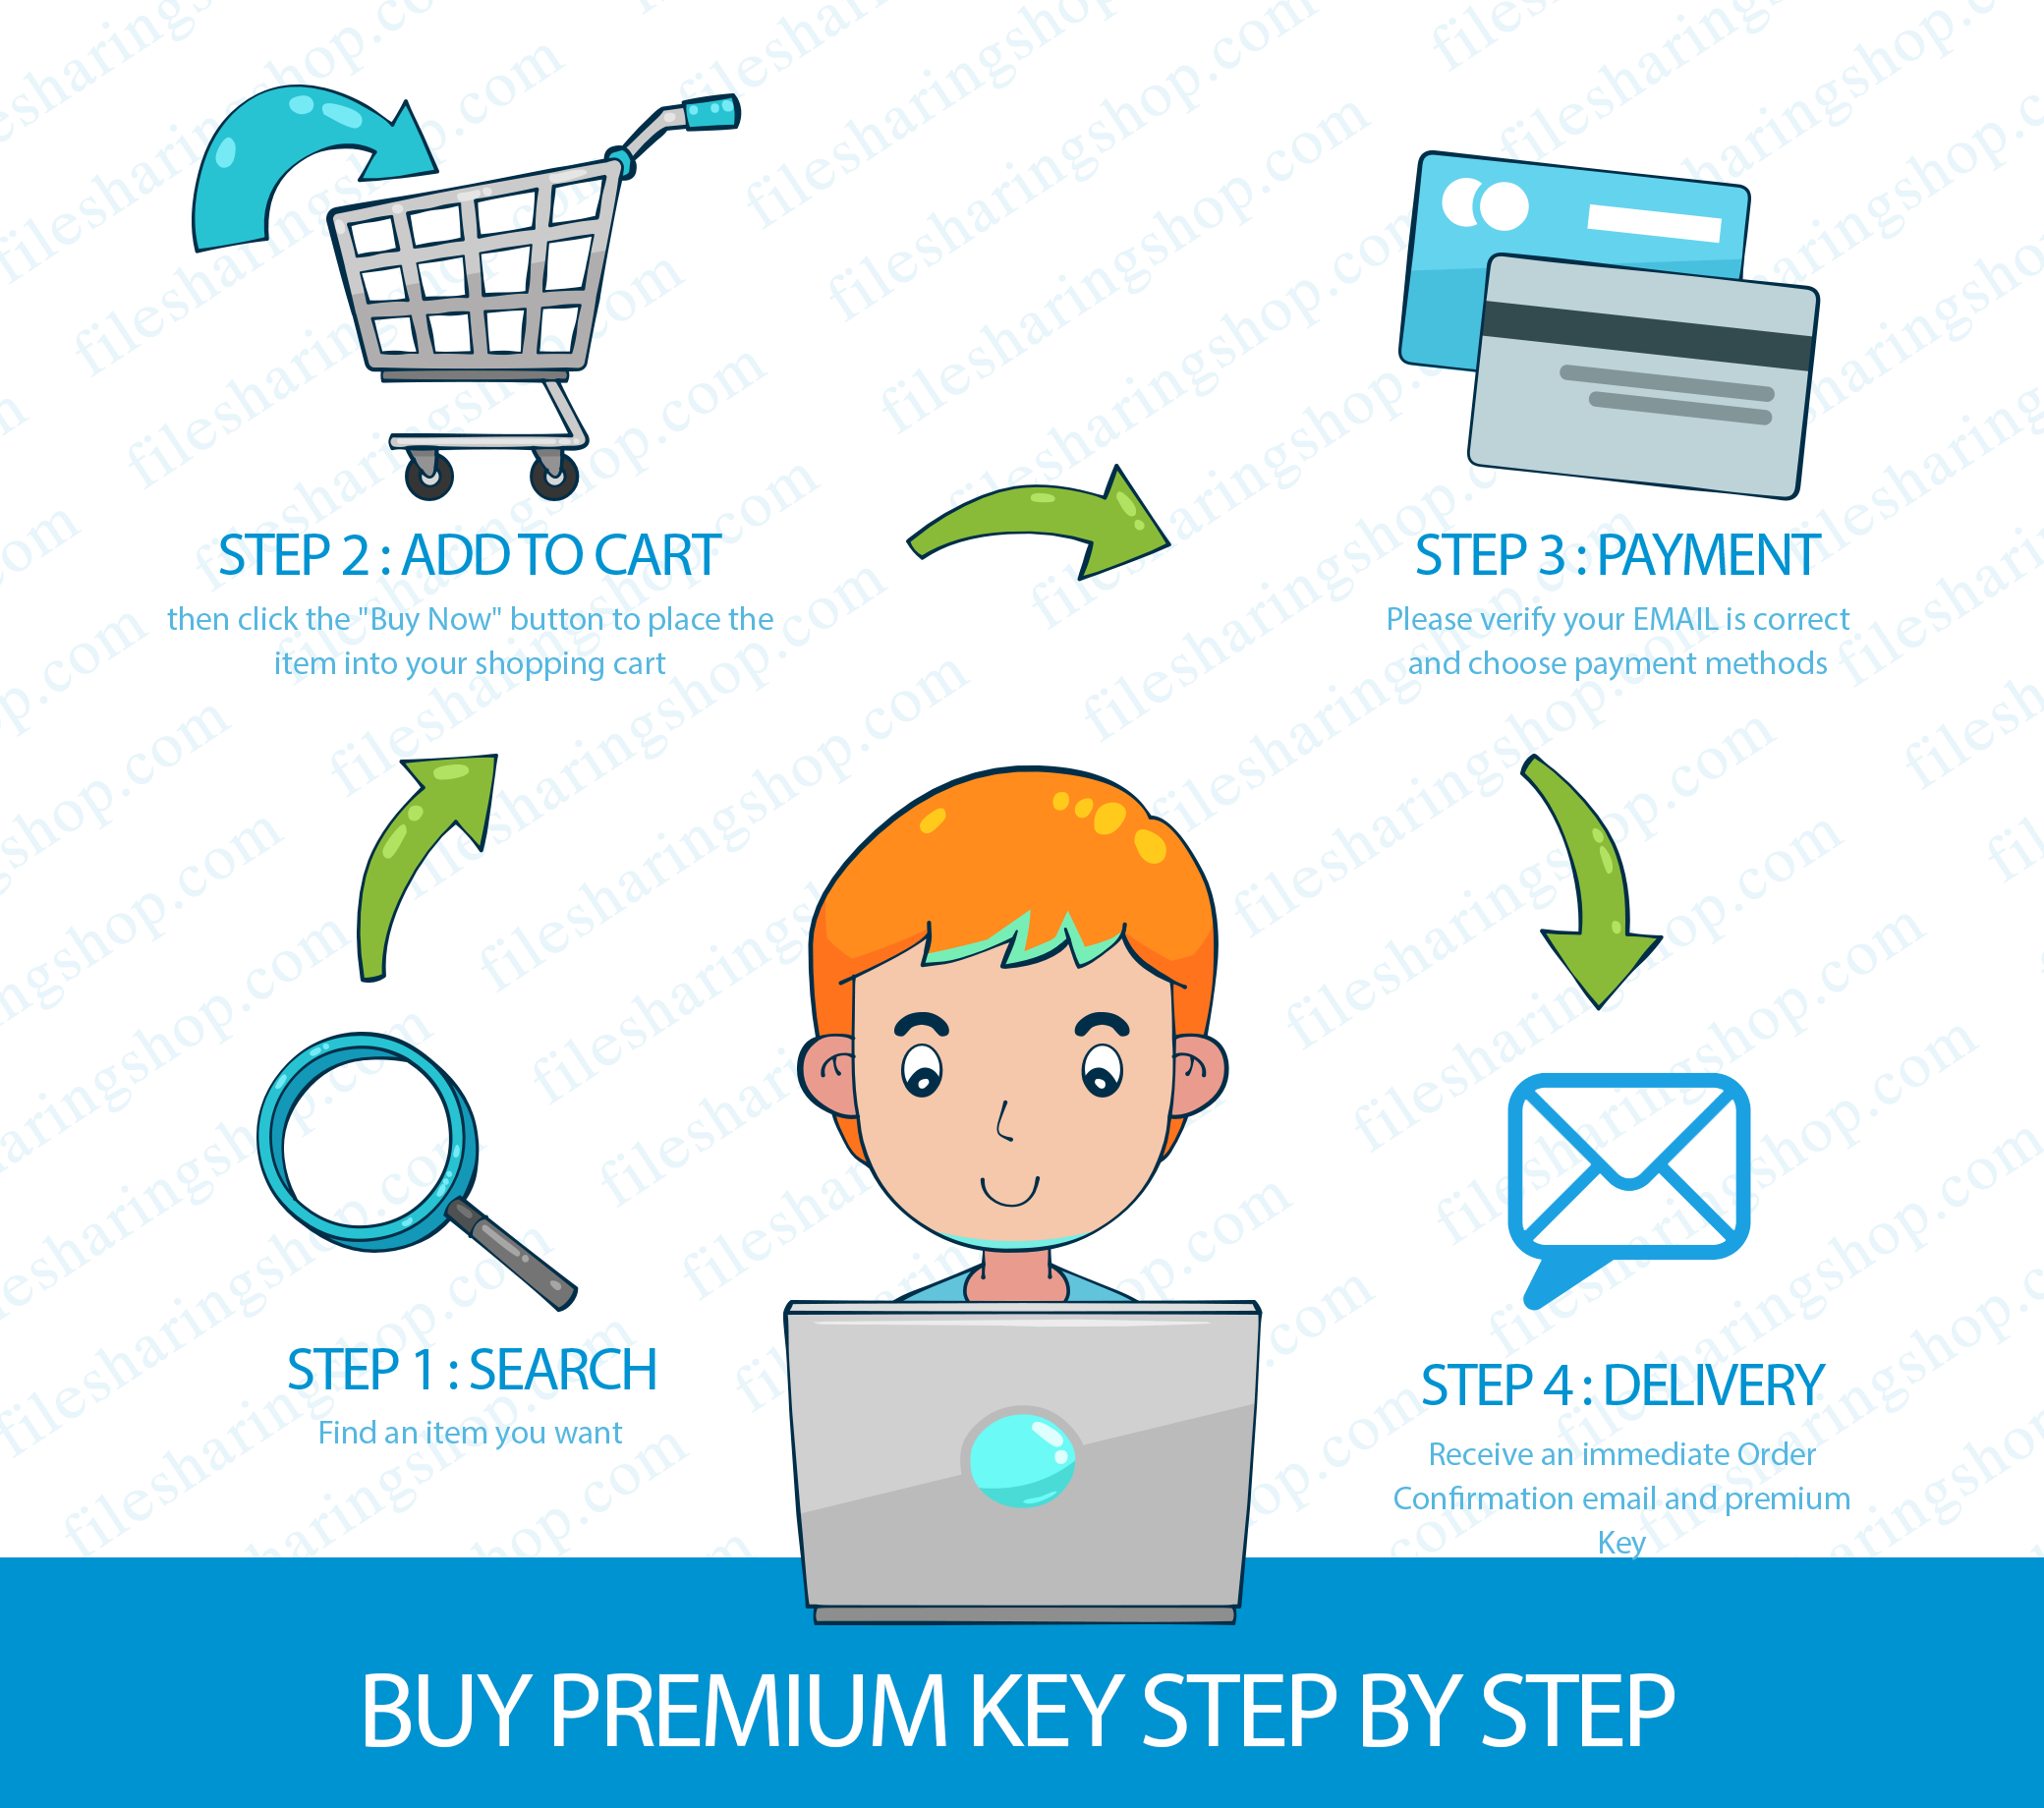 HOW TO BUY CORNFILE PREMIUM